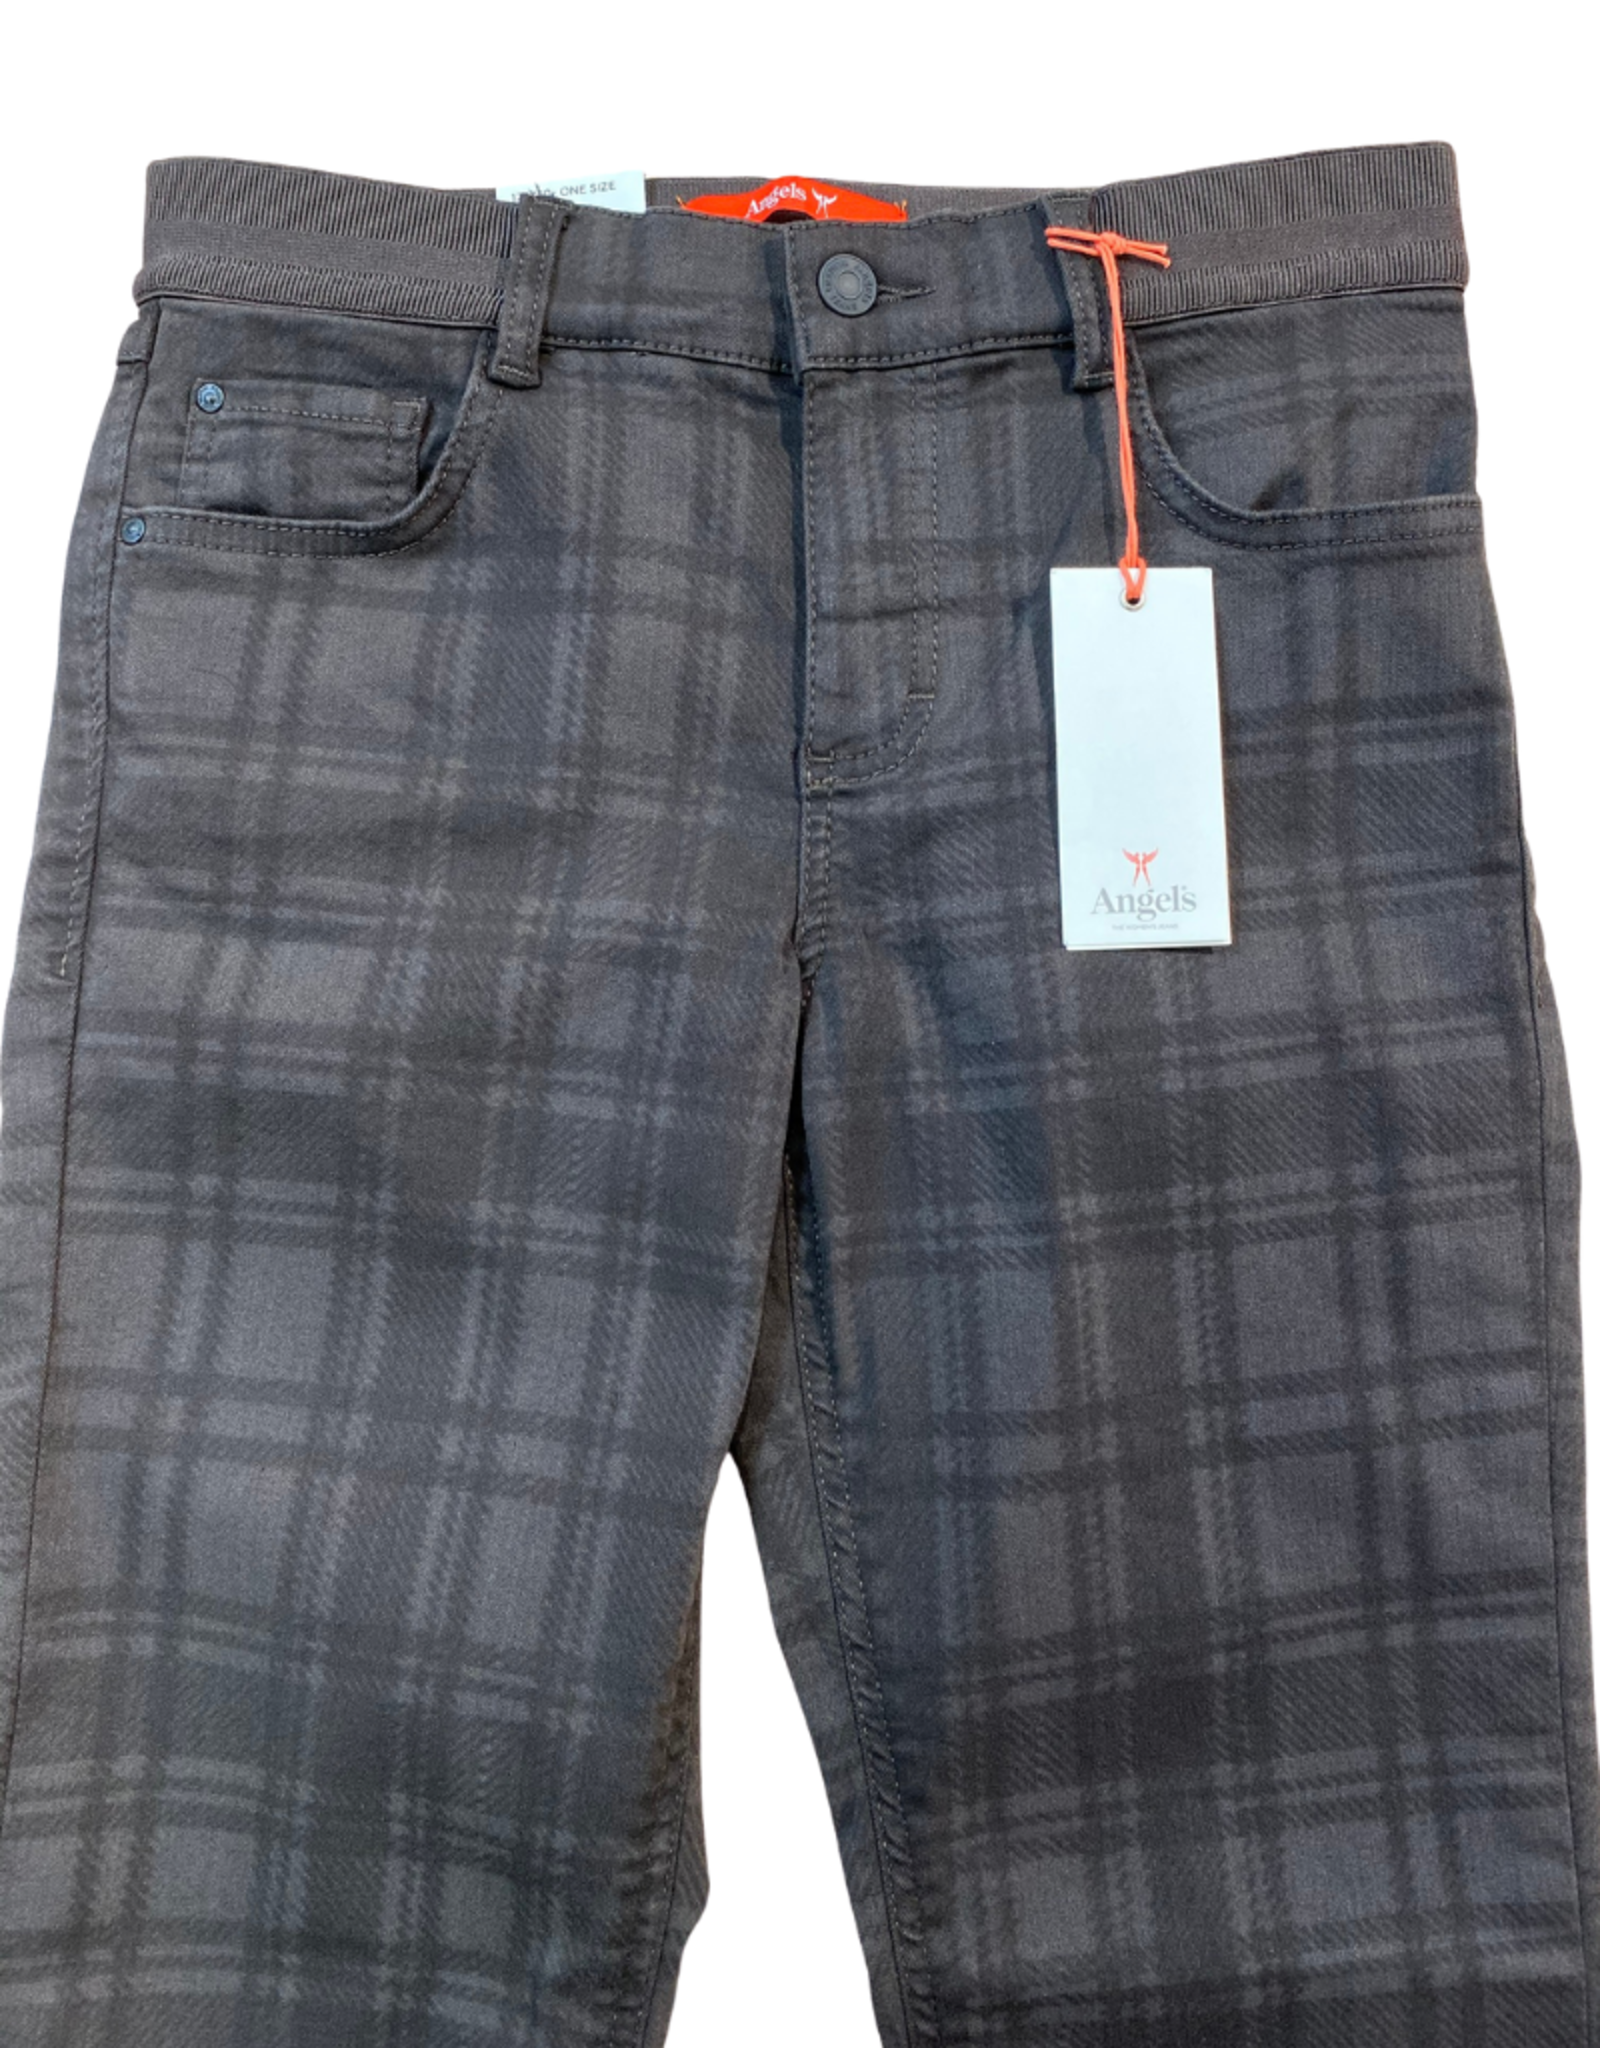 Angels jeans 123730-229/4199 One size